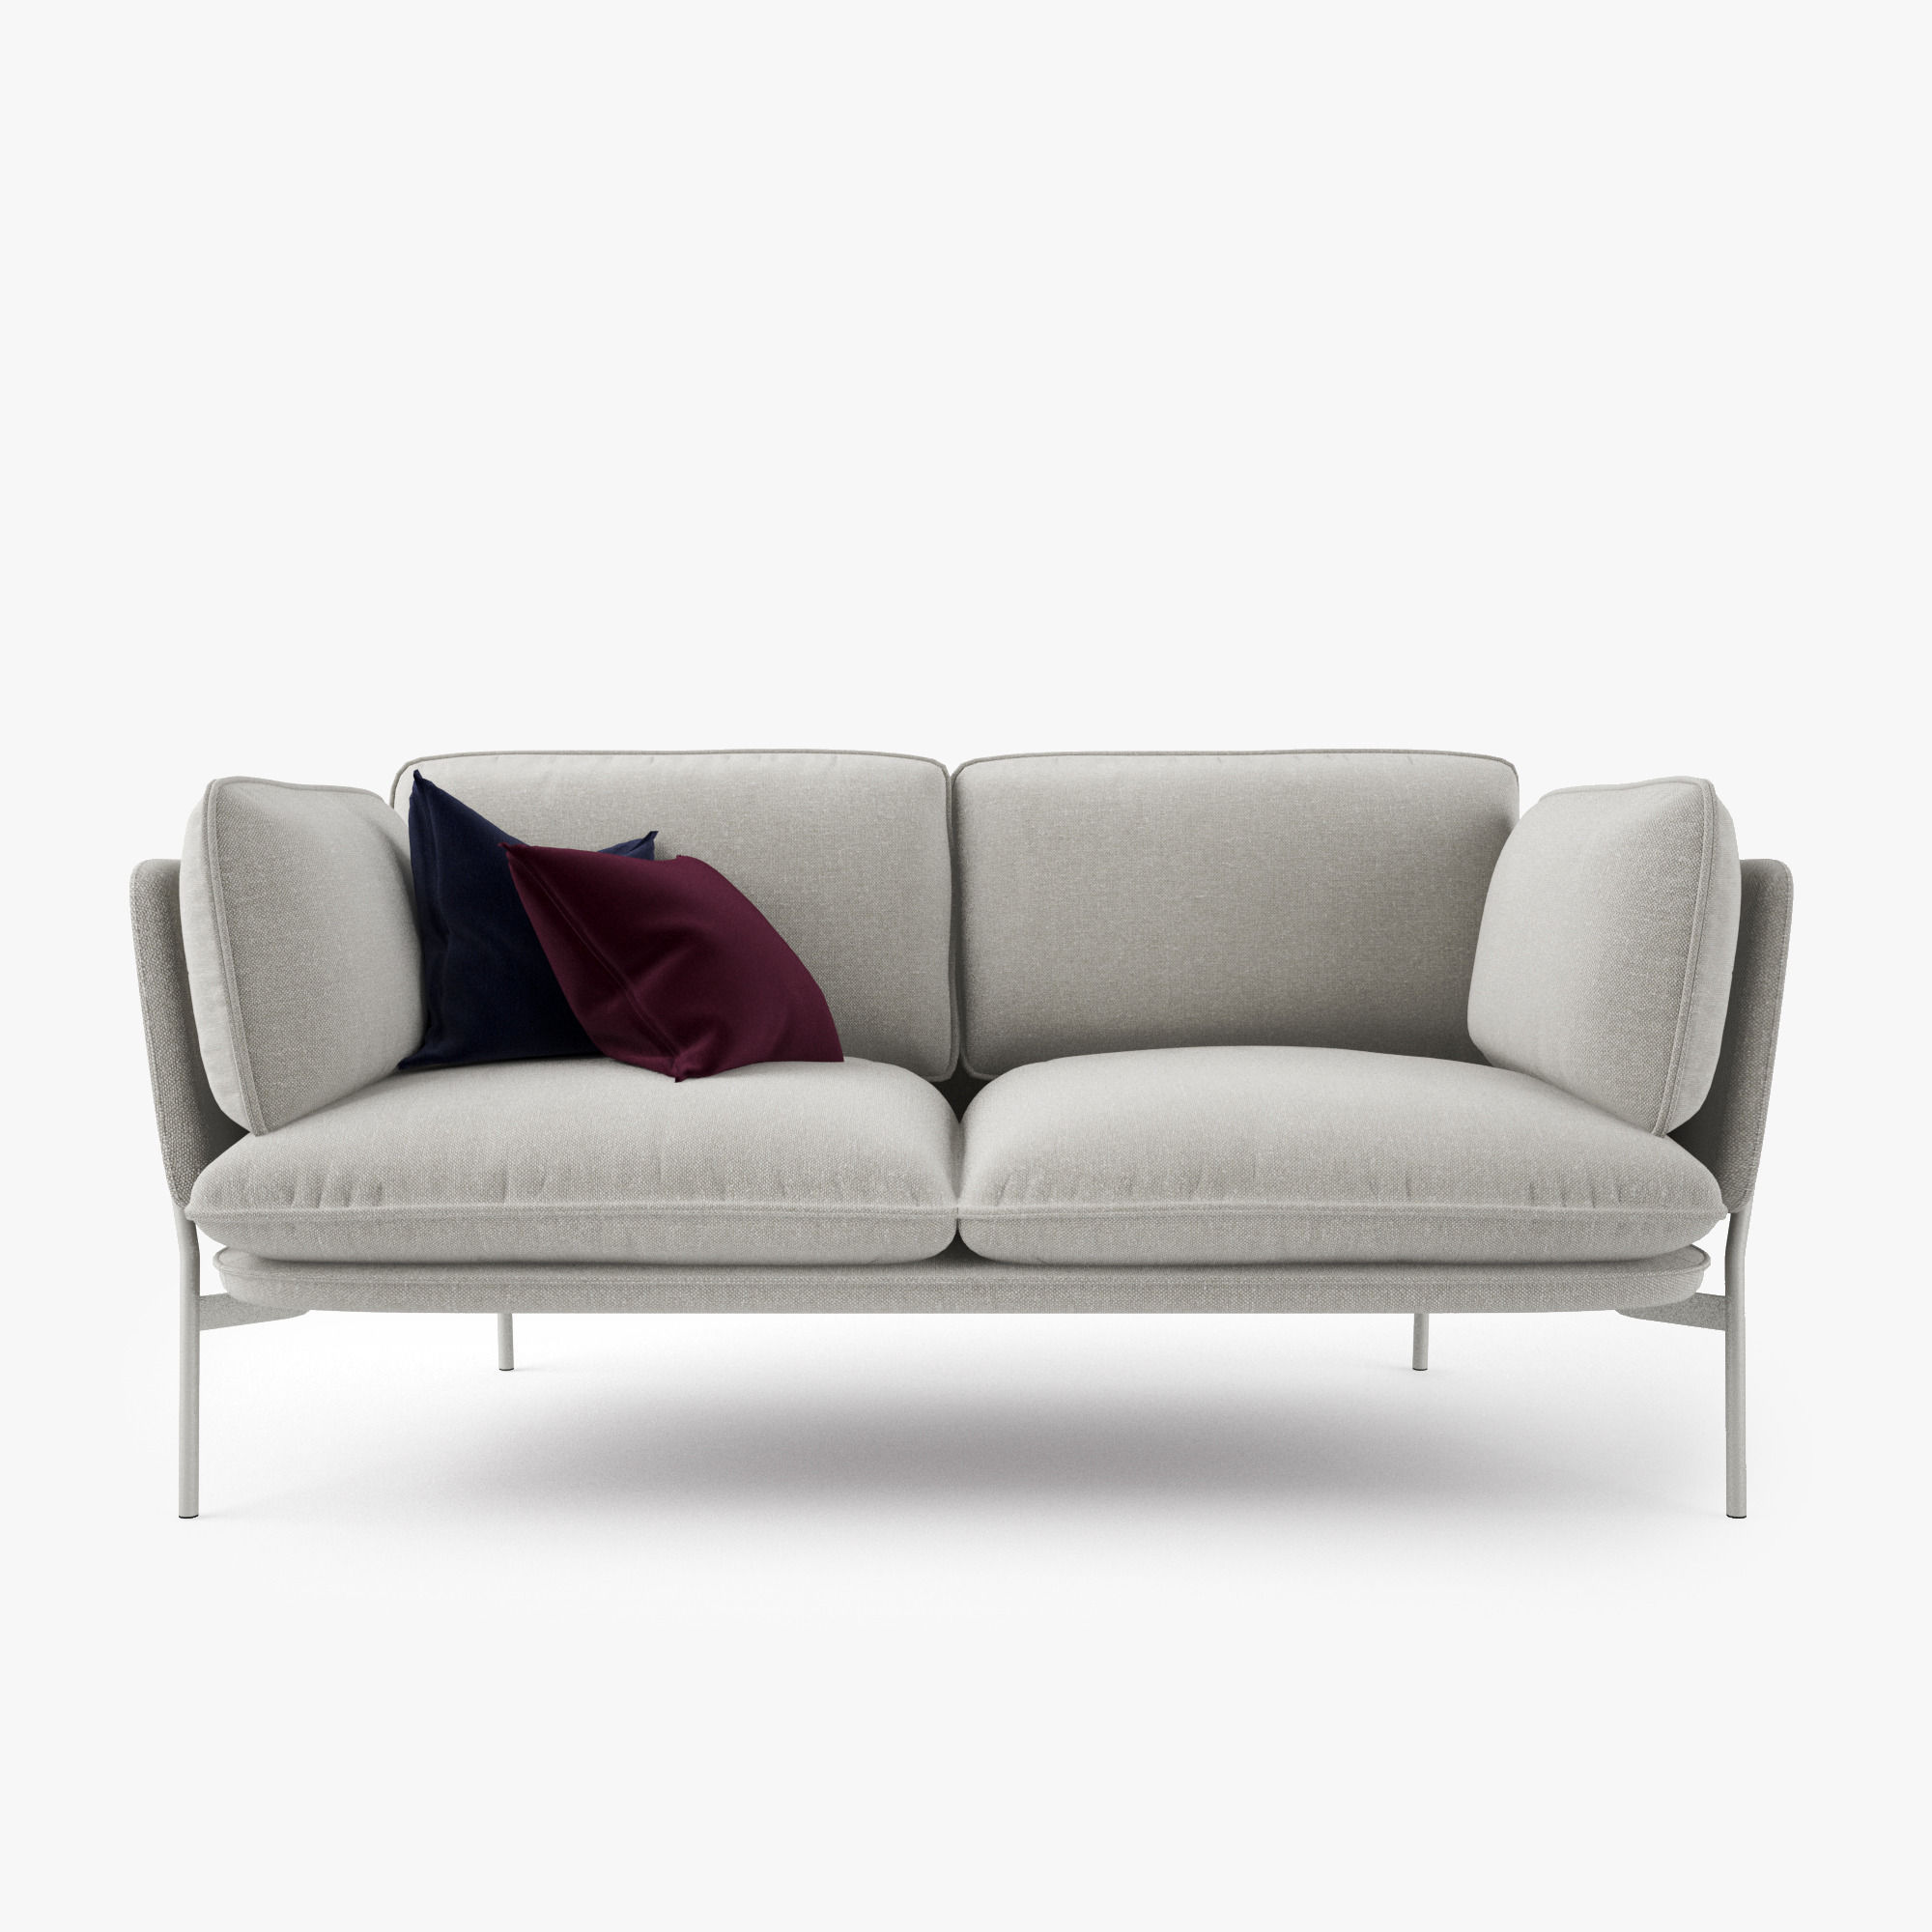 3D model And Tradition Cloud Two Seater Sofa